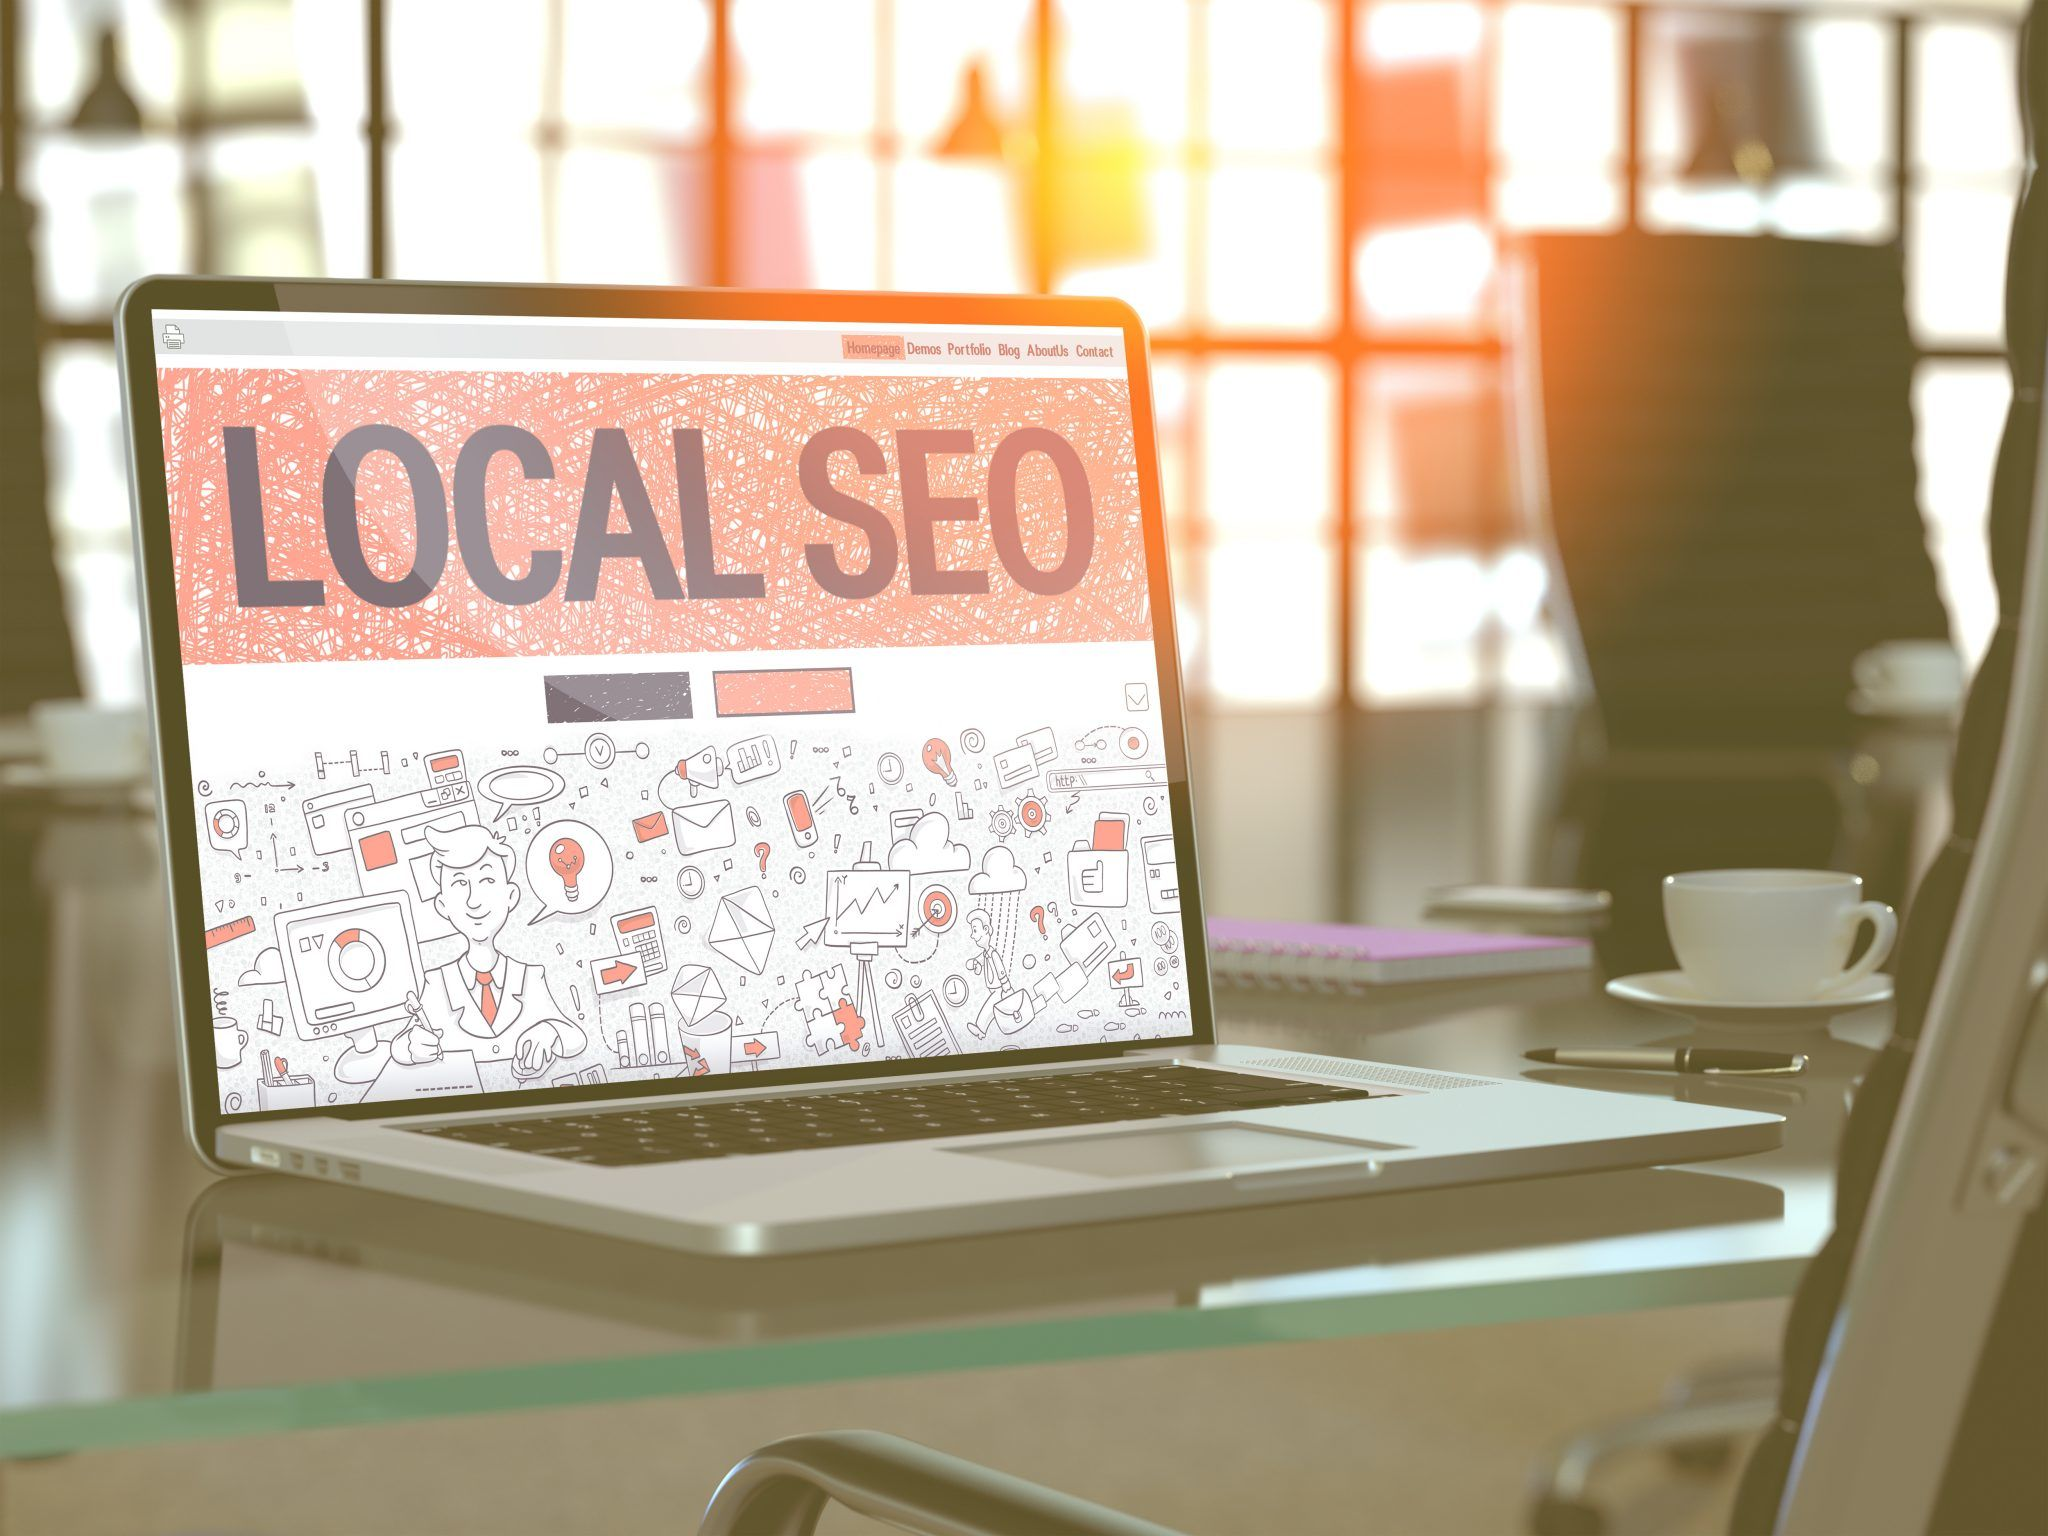 Improve your local SEO by being consistent, searchable, and informative.